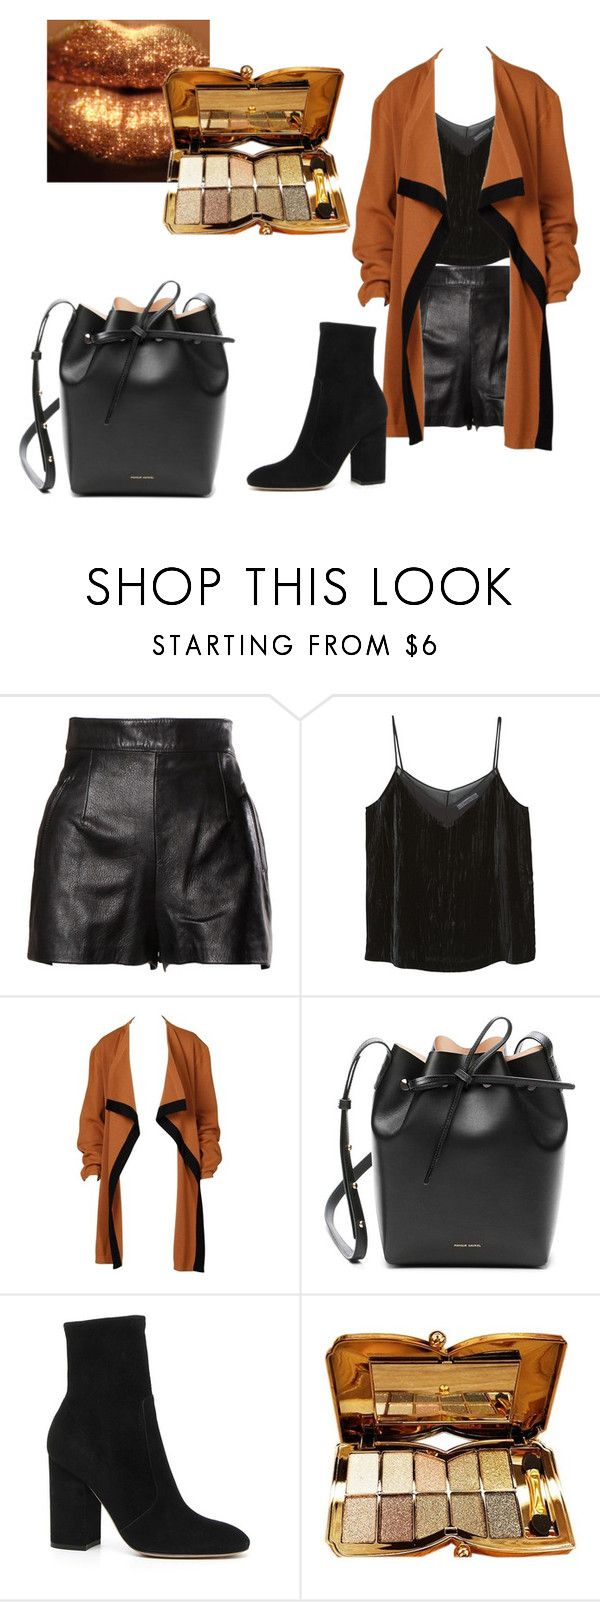 """""""Untitled #328"""" by gildaronca ❤ liked on Polyvore featuring Moschino, MANGO, Courrèges, Mansur Gavriel and Valentino"""